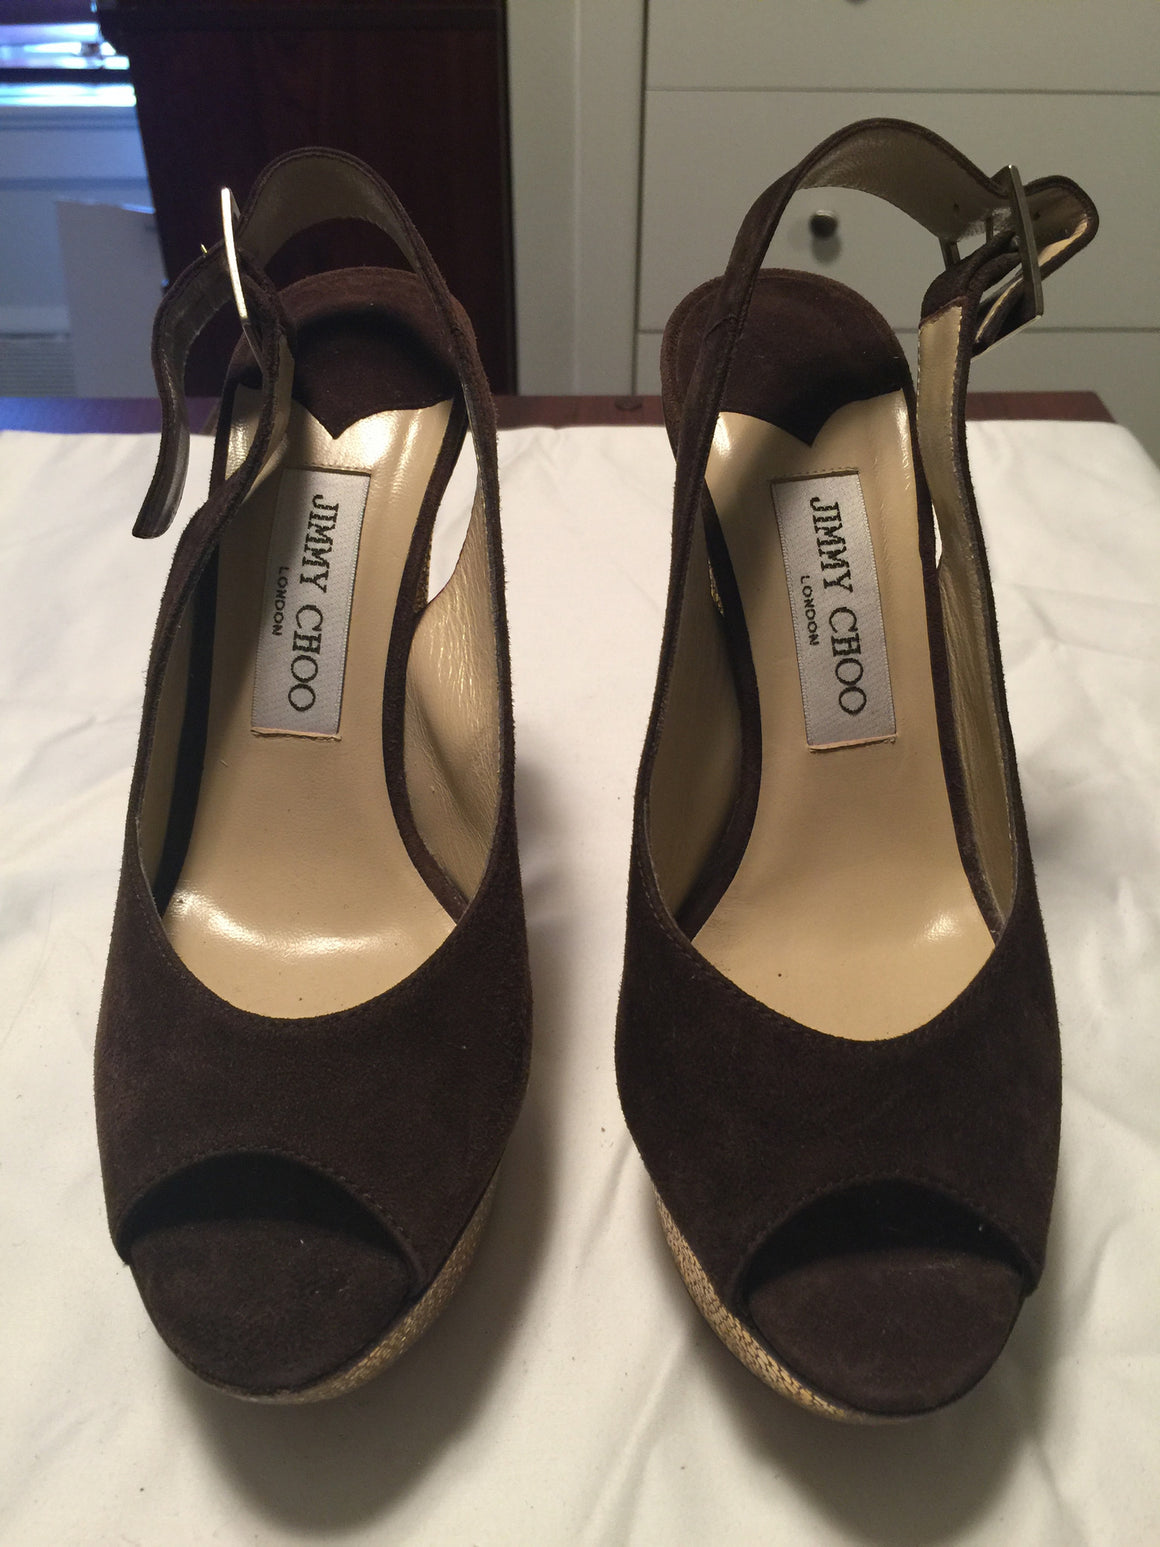 Jimmy Choo Platform Pumps - New York Authentic Designer - Jimmy Choo